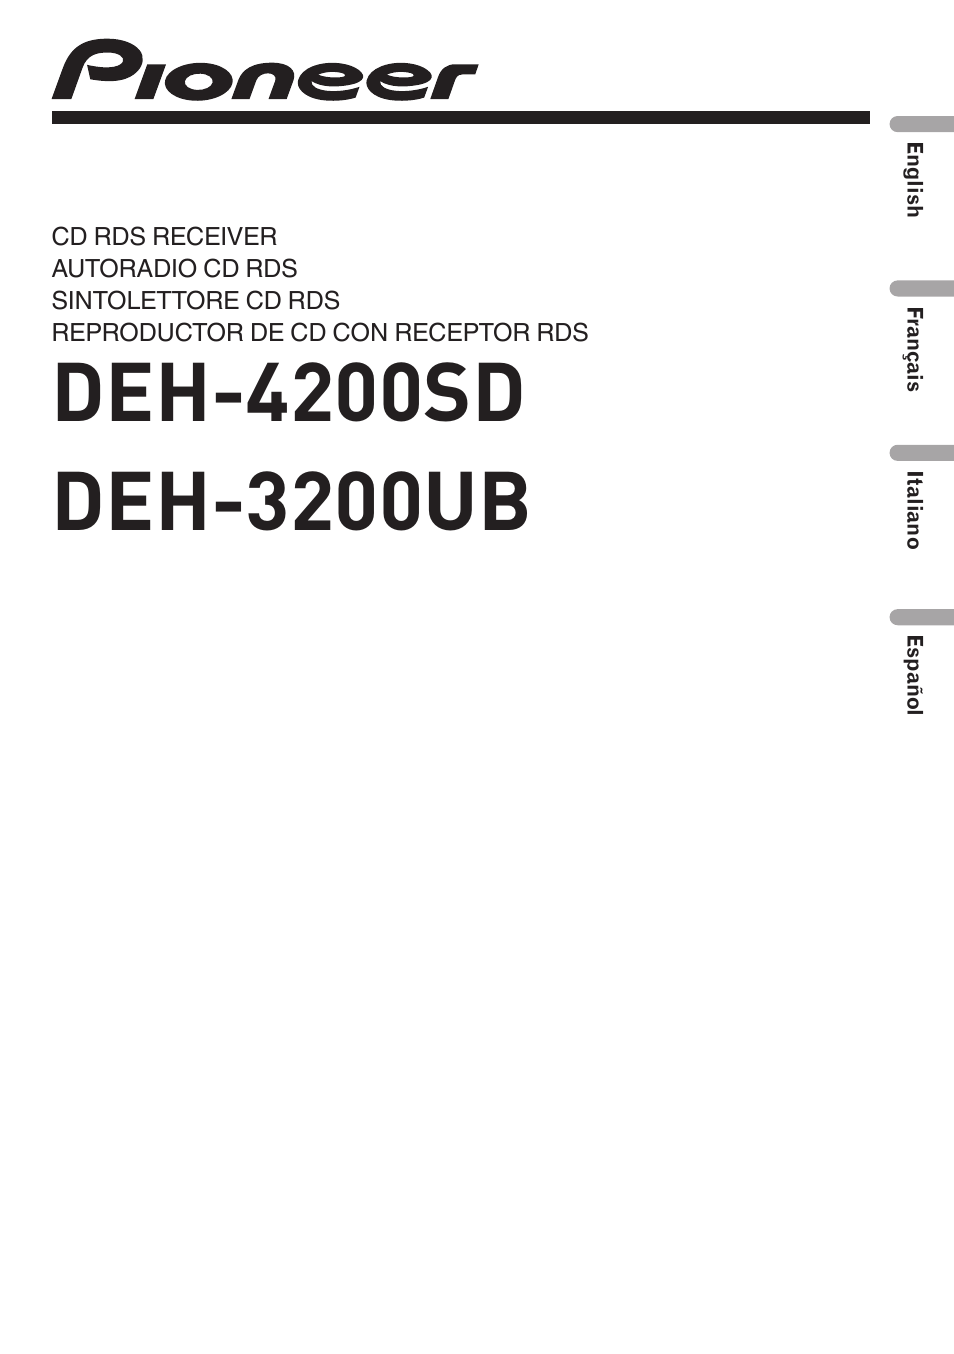 pioneer deh 3200ub user manual 116 pages also for deh 4200sd rh manualsdir com pioneer deh-3200ub installation manual pioneer radio deh-3200ub manual